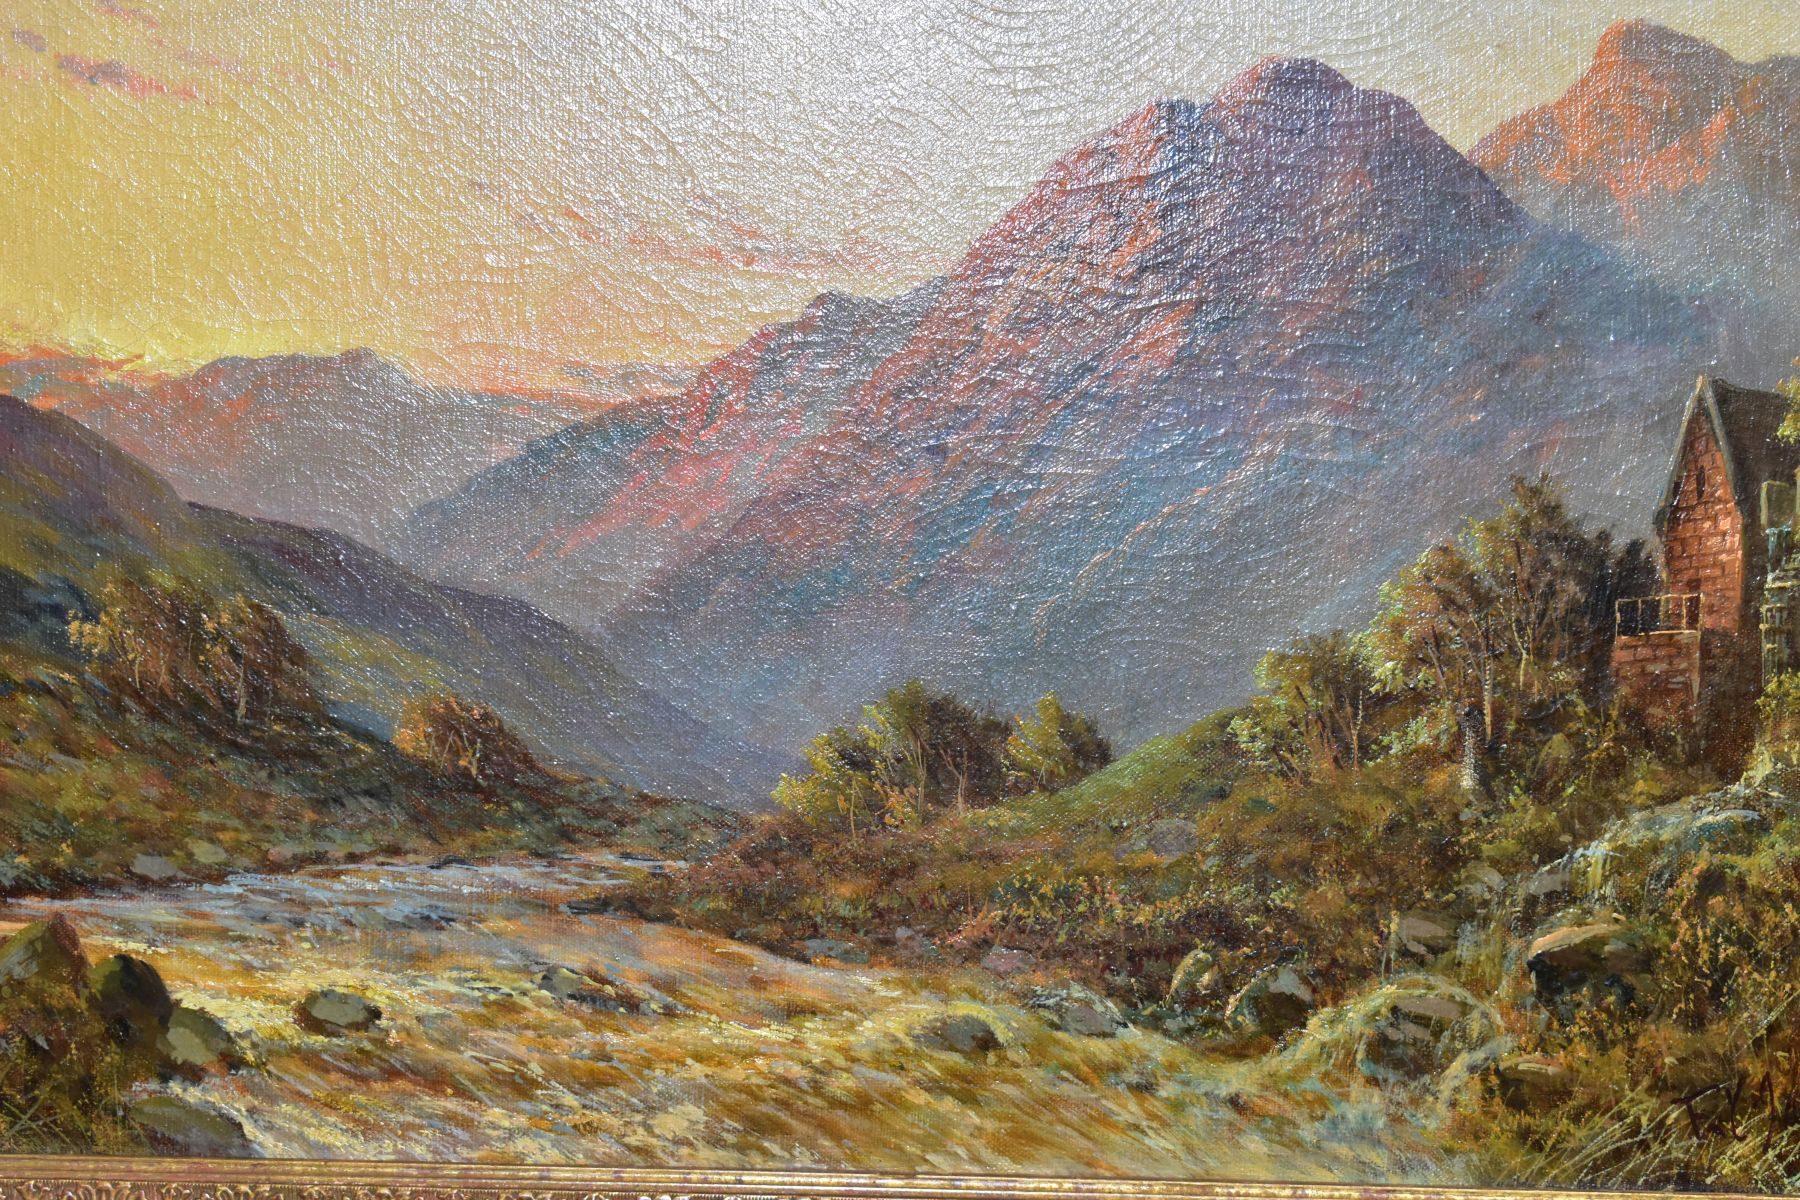 FRANCIS E JAMIESON (1895-1950) 'ALLAN WATERS NR STIRLING' a Scottish mountainous landscape with - Image 2 of 4